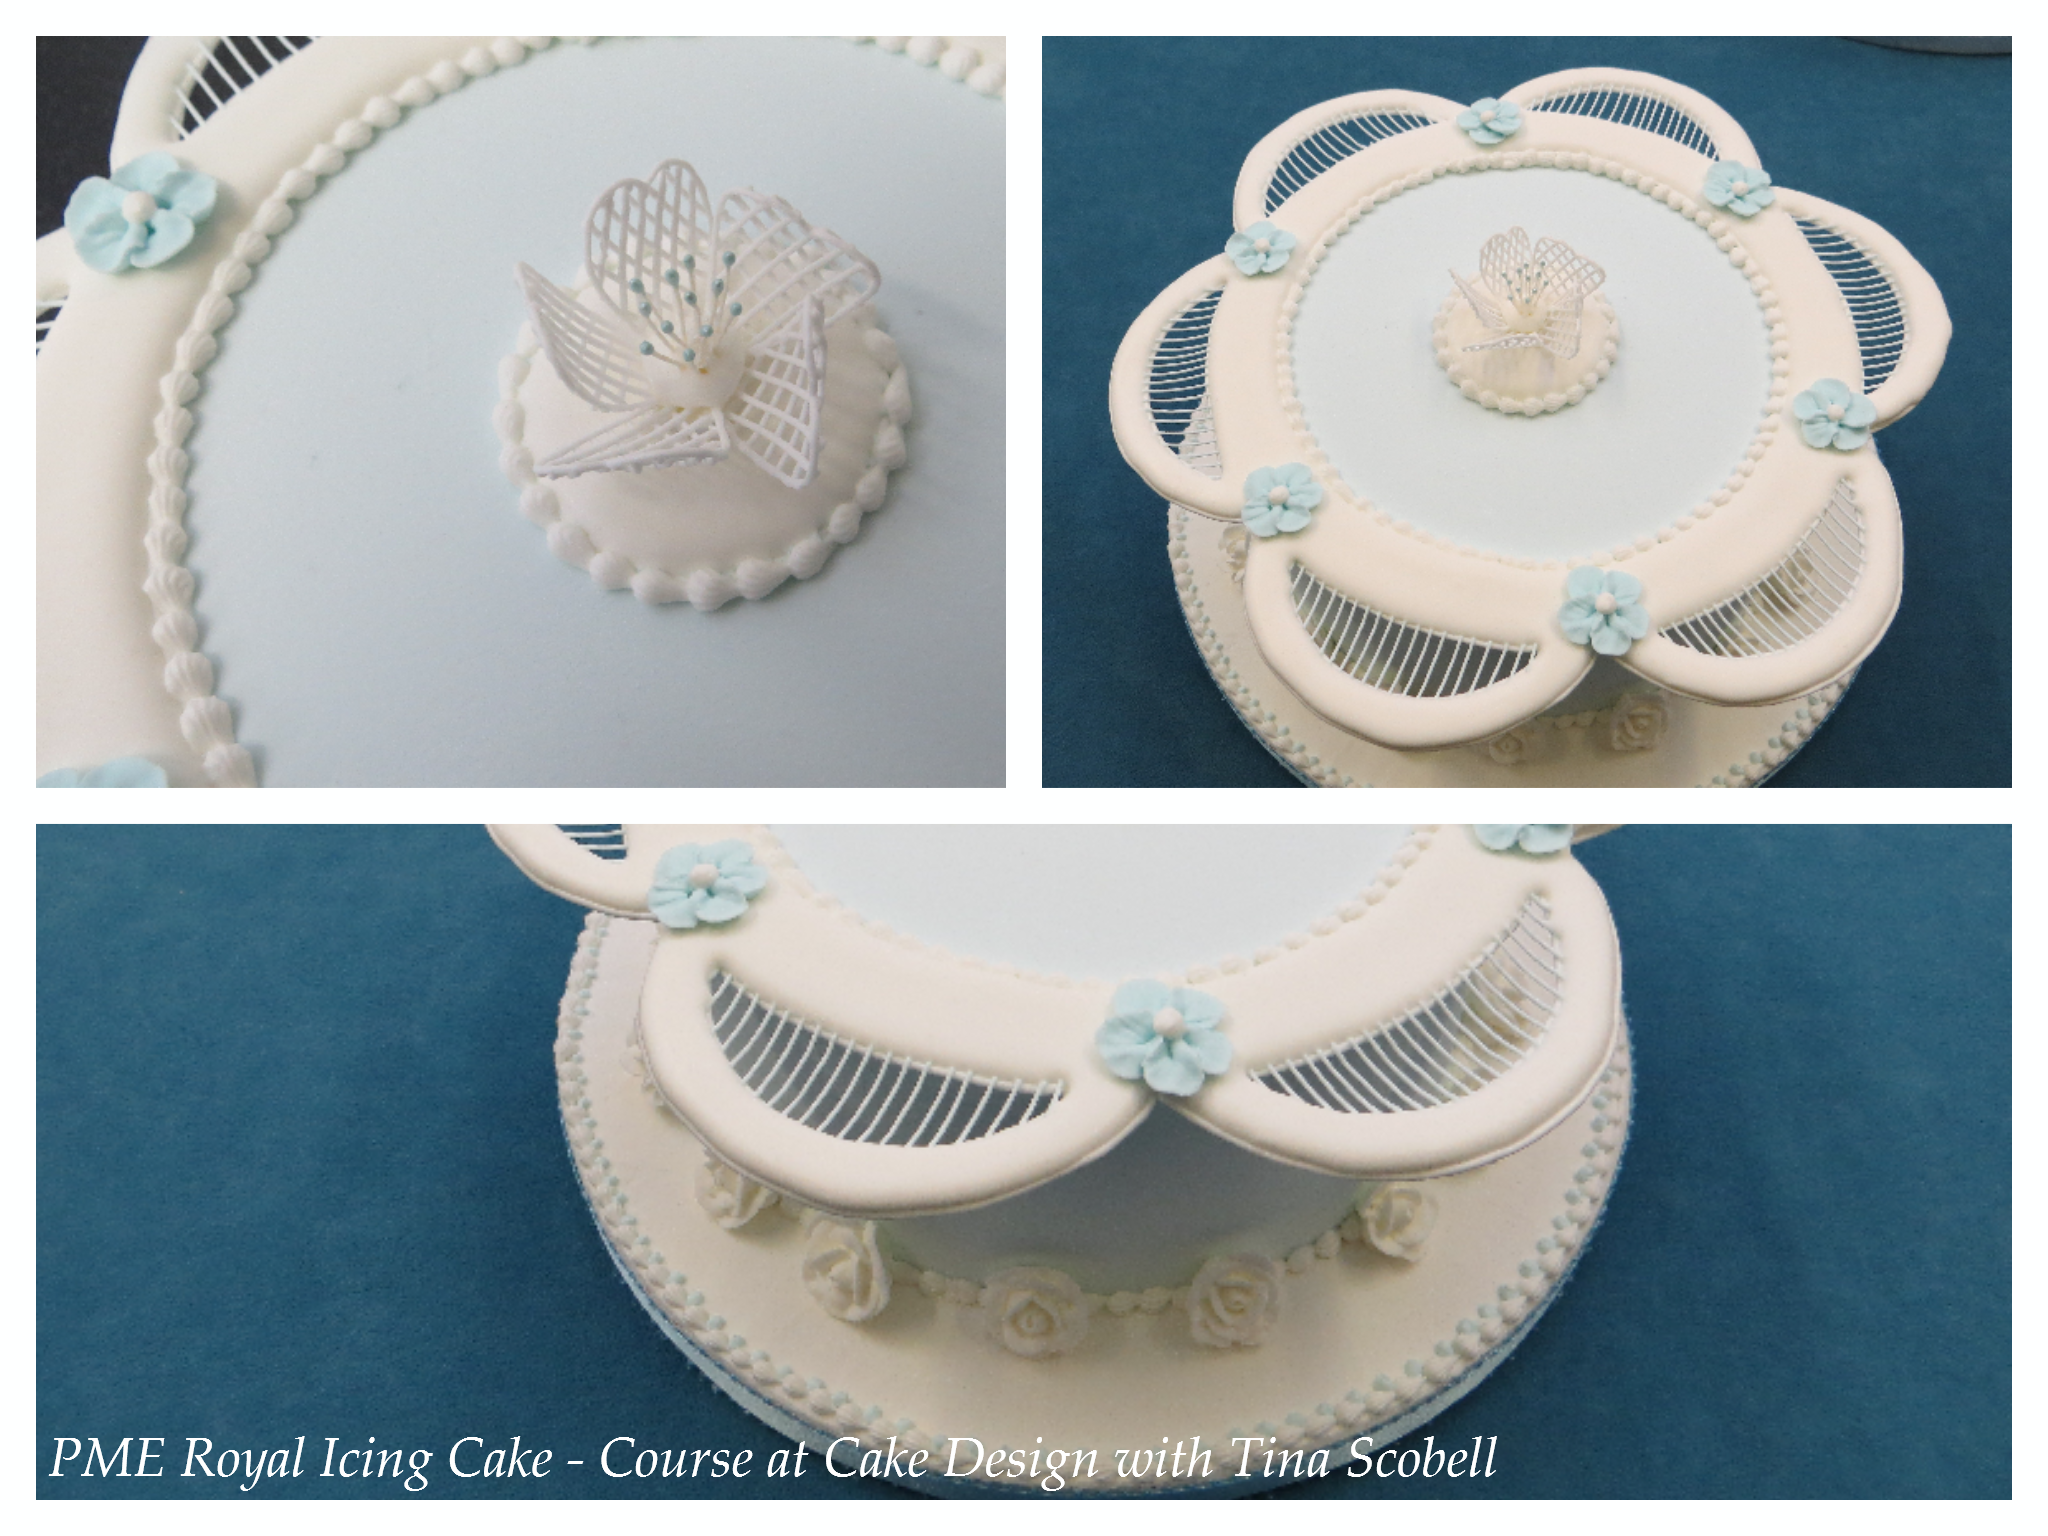 Pme Royal Icing Cake From Course At Cake Designs With Tina